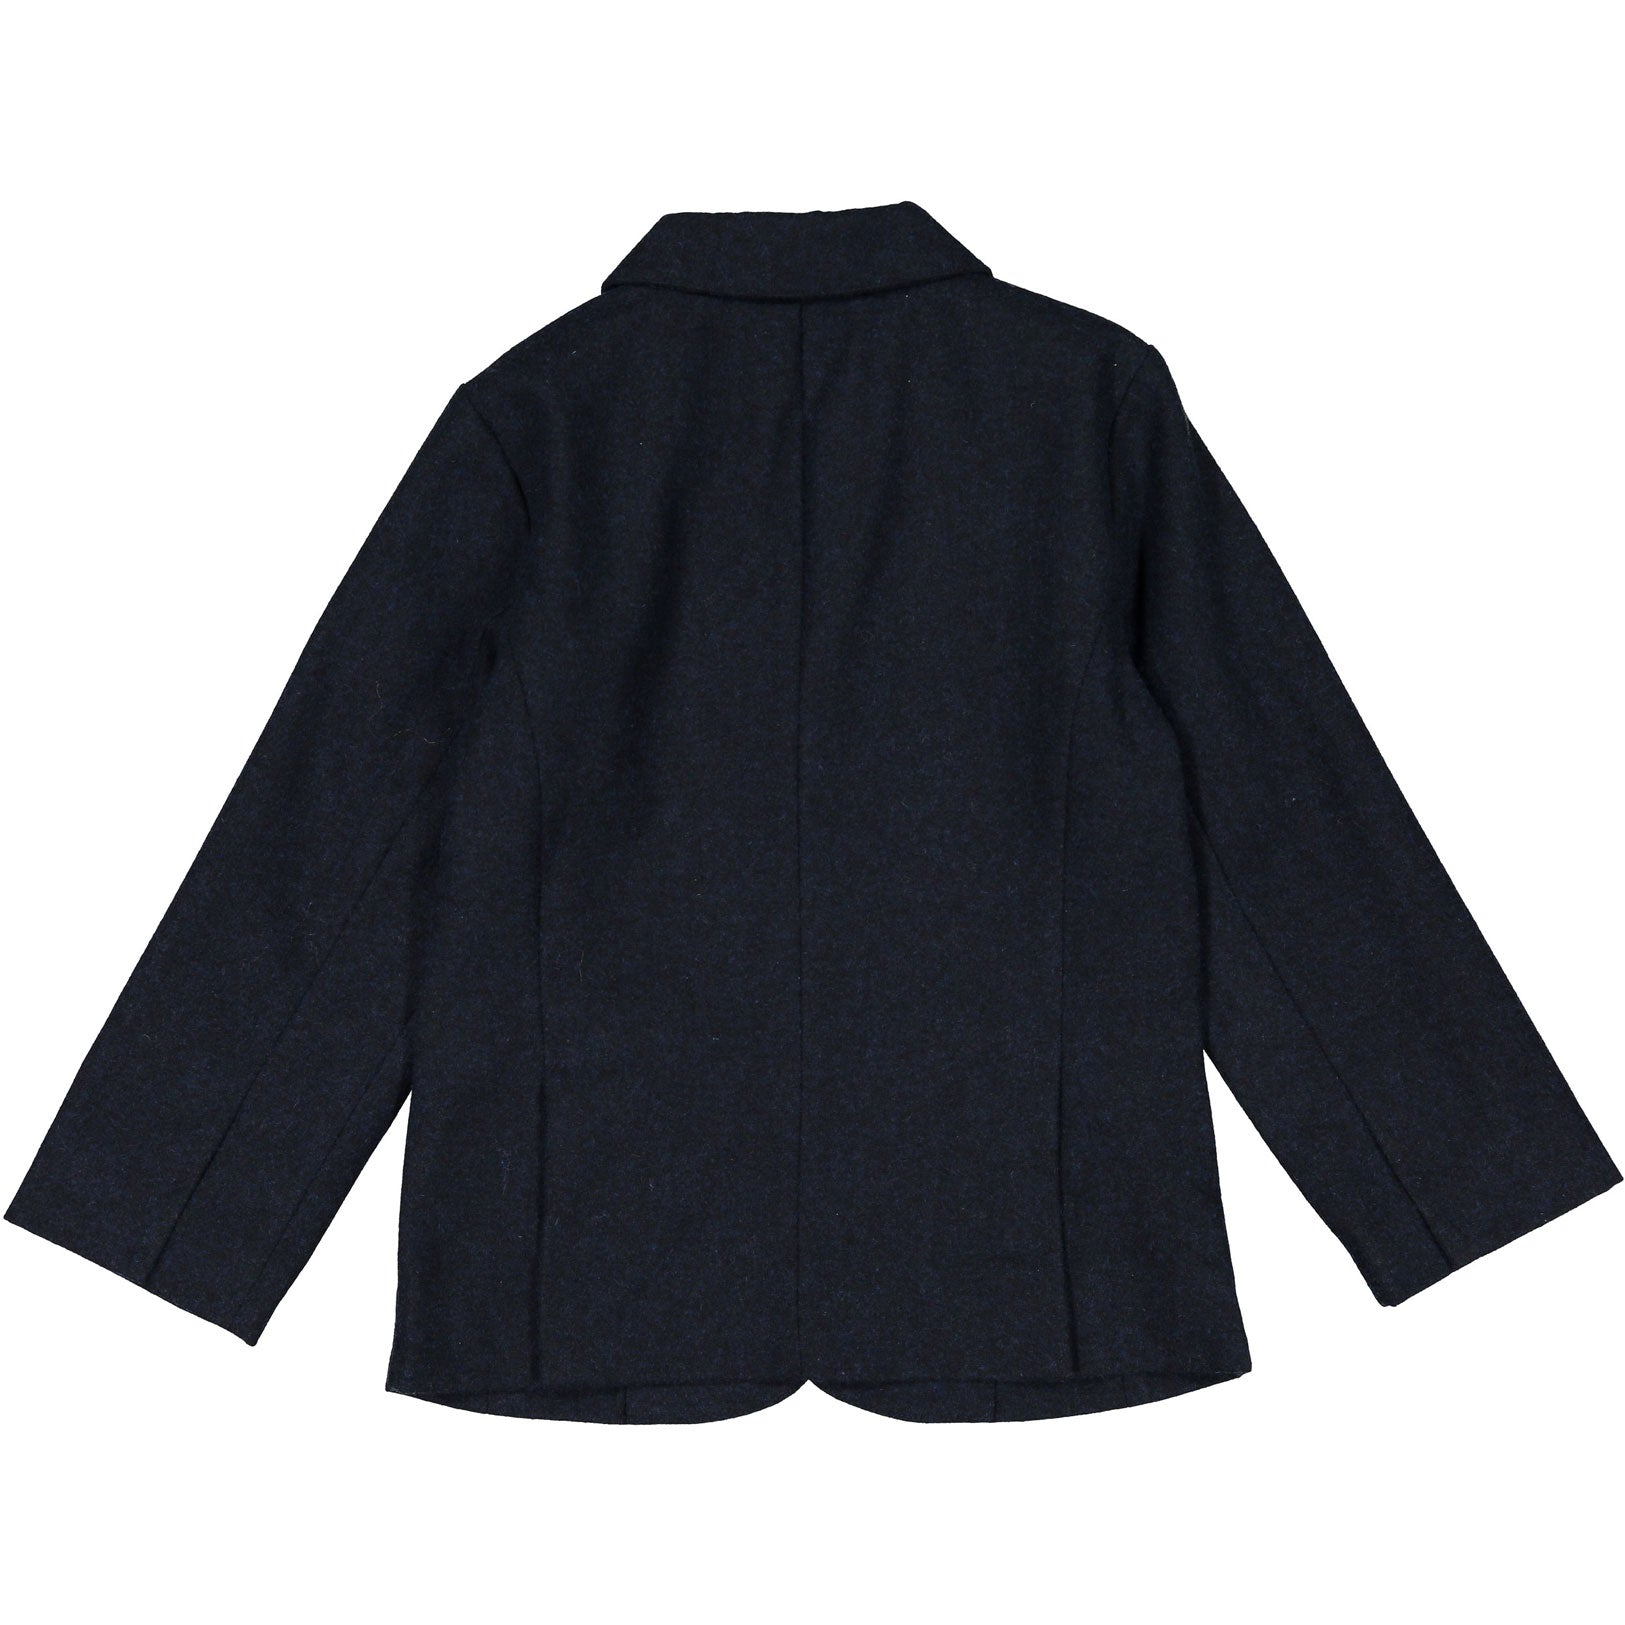 Liho Navy Blue Blazer - Ladida